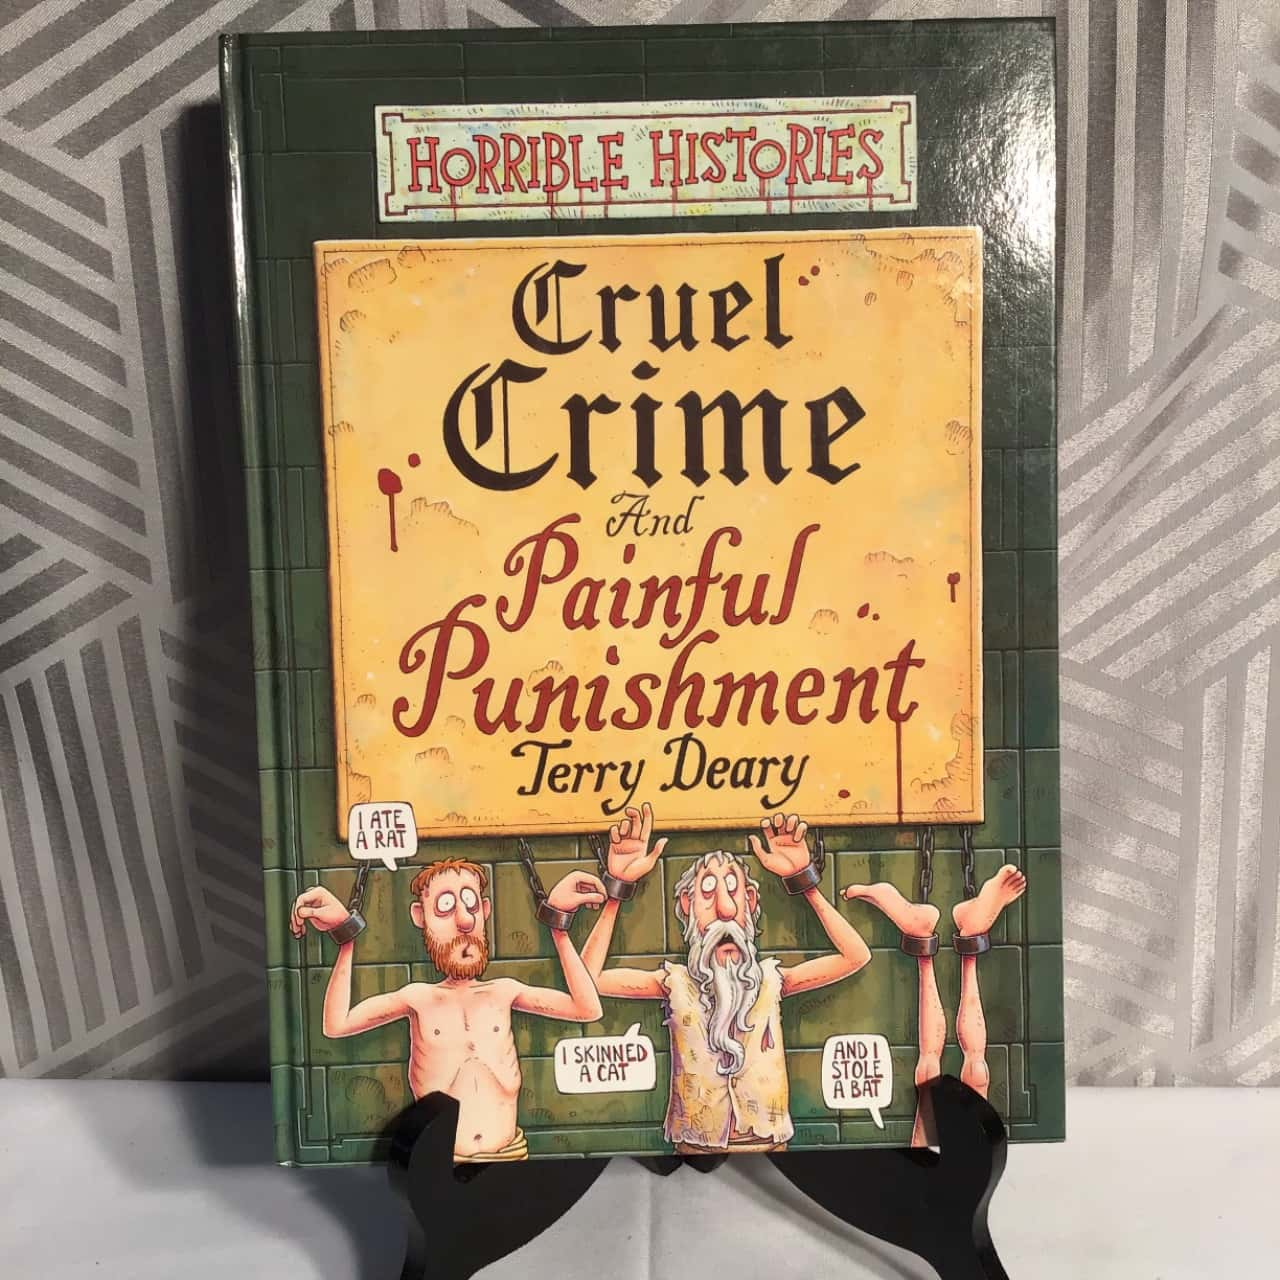 Horrible Histories Cruel Crime By Jerry Deary